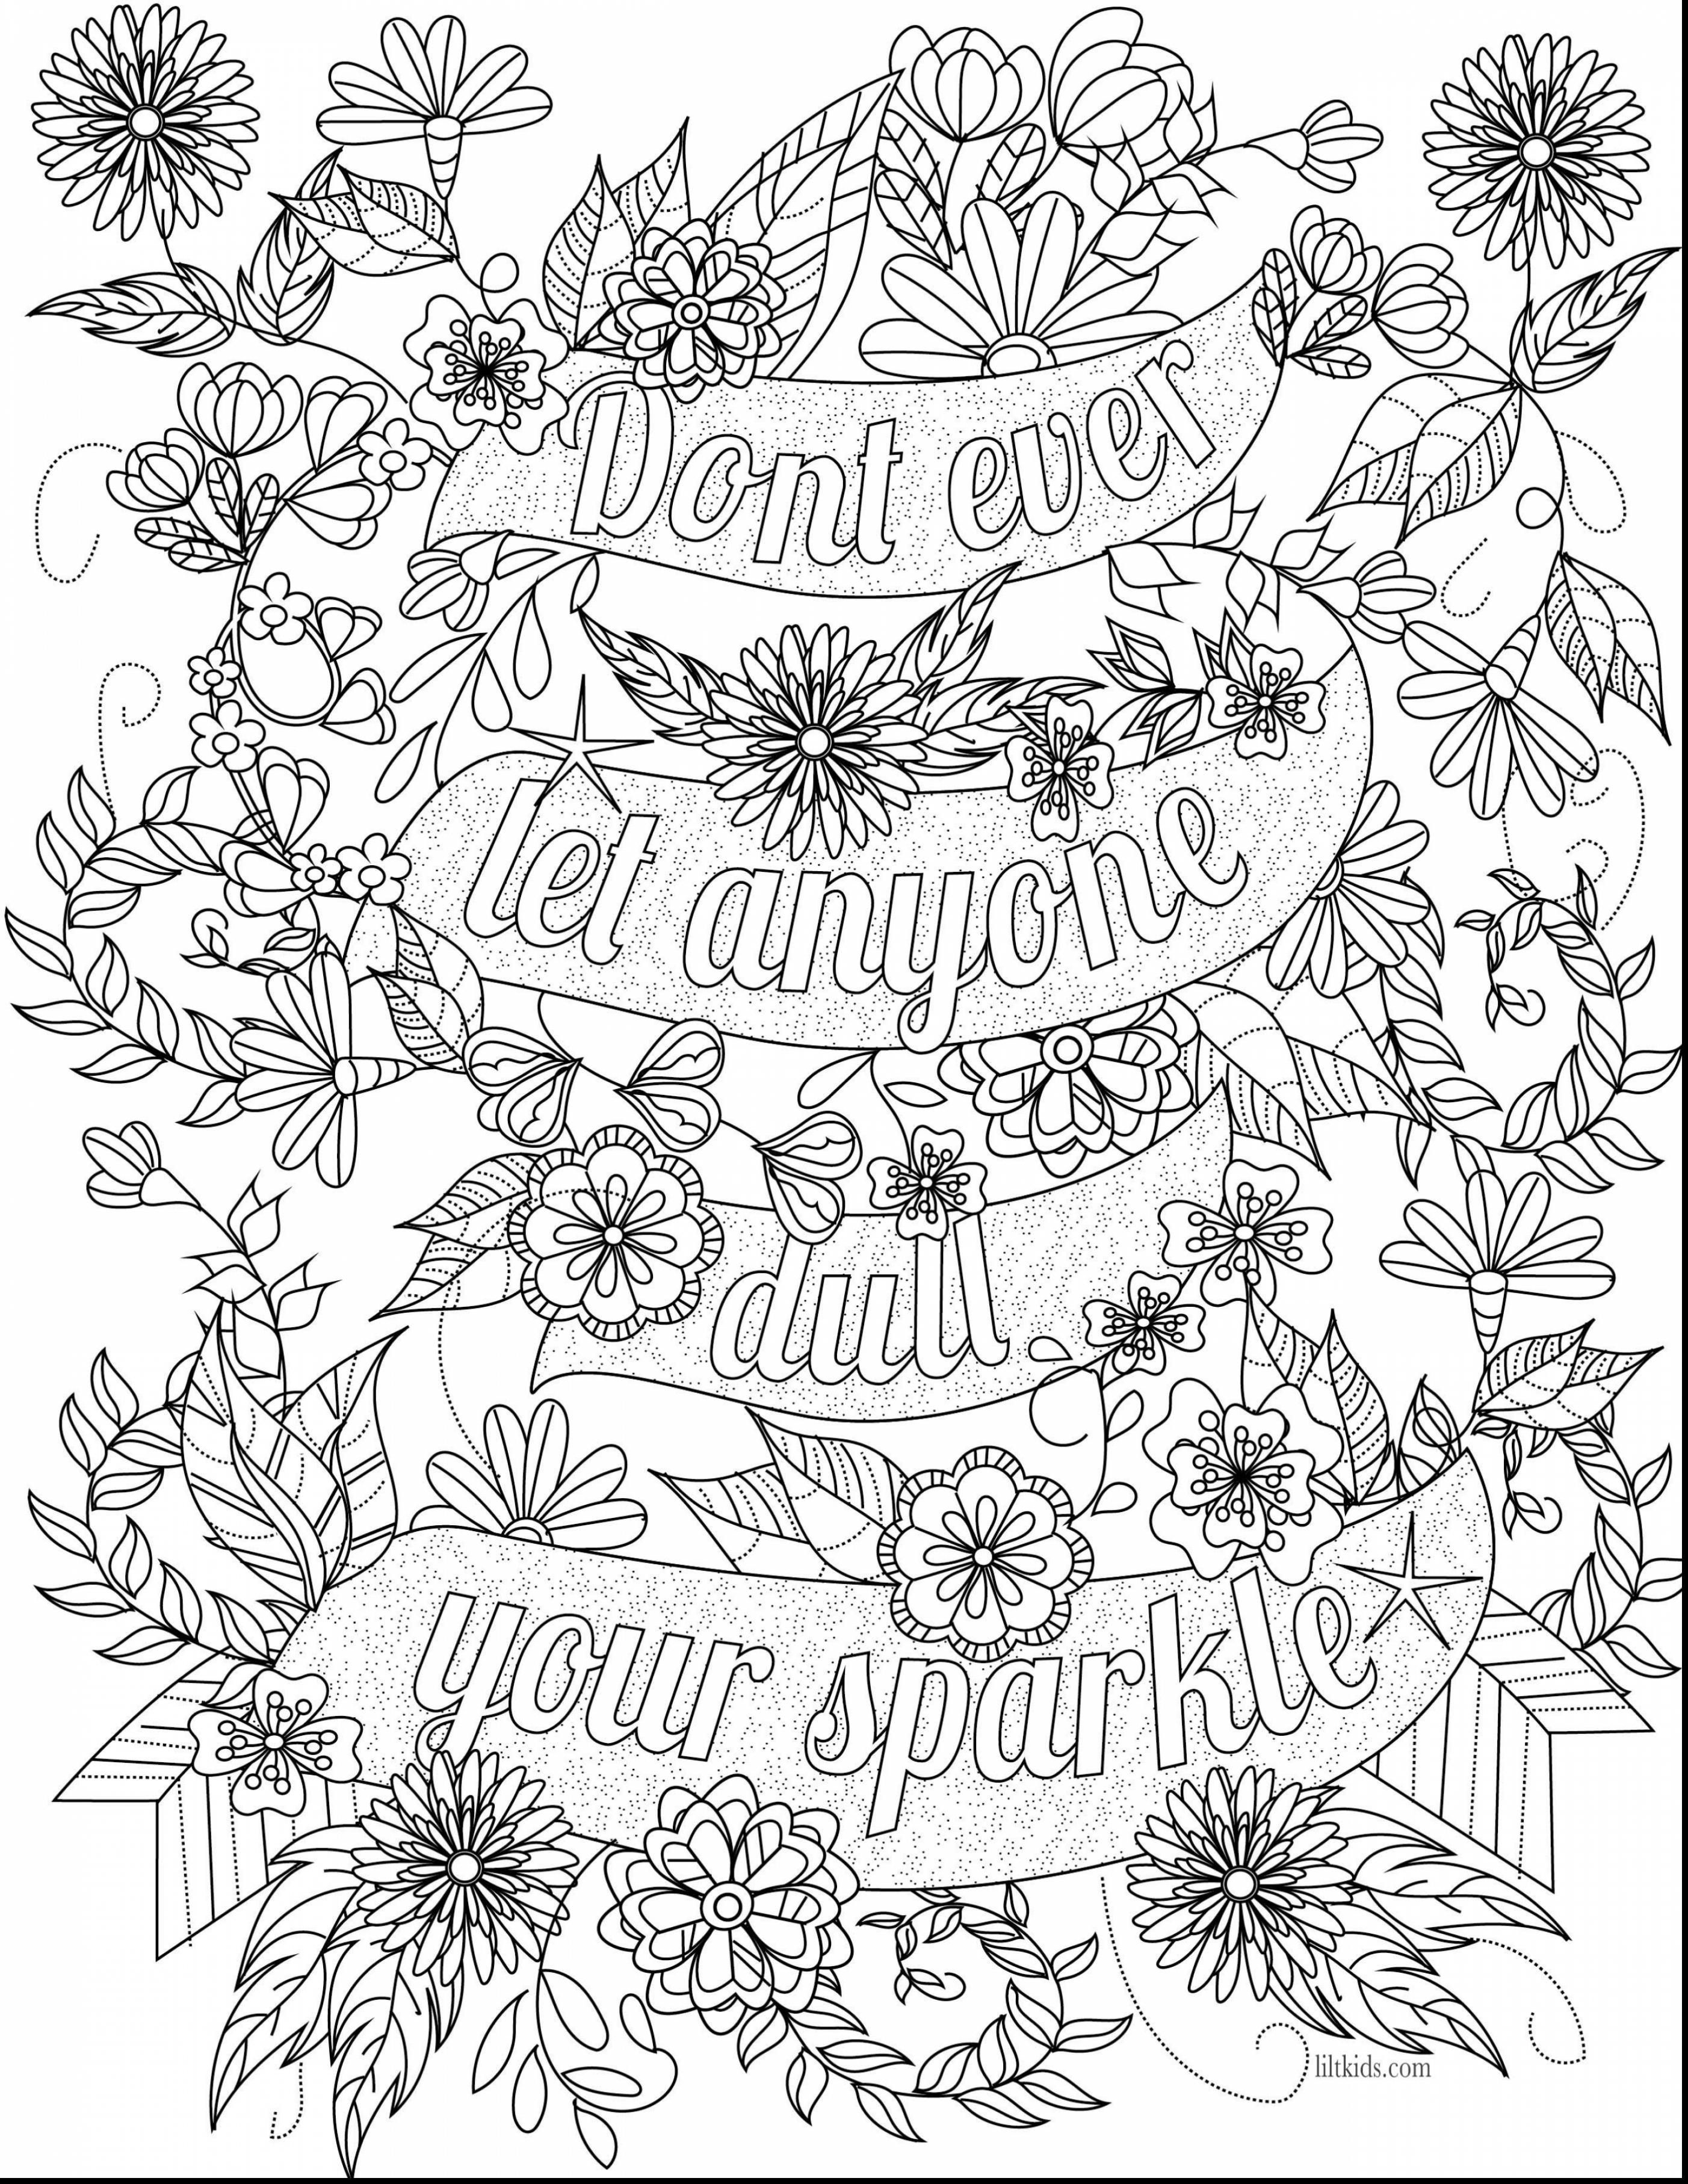 Coloring Ideas : Free Printable Quotesoloring Pages Ideas - Free Printable Quotes Coloring Pages